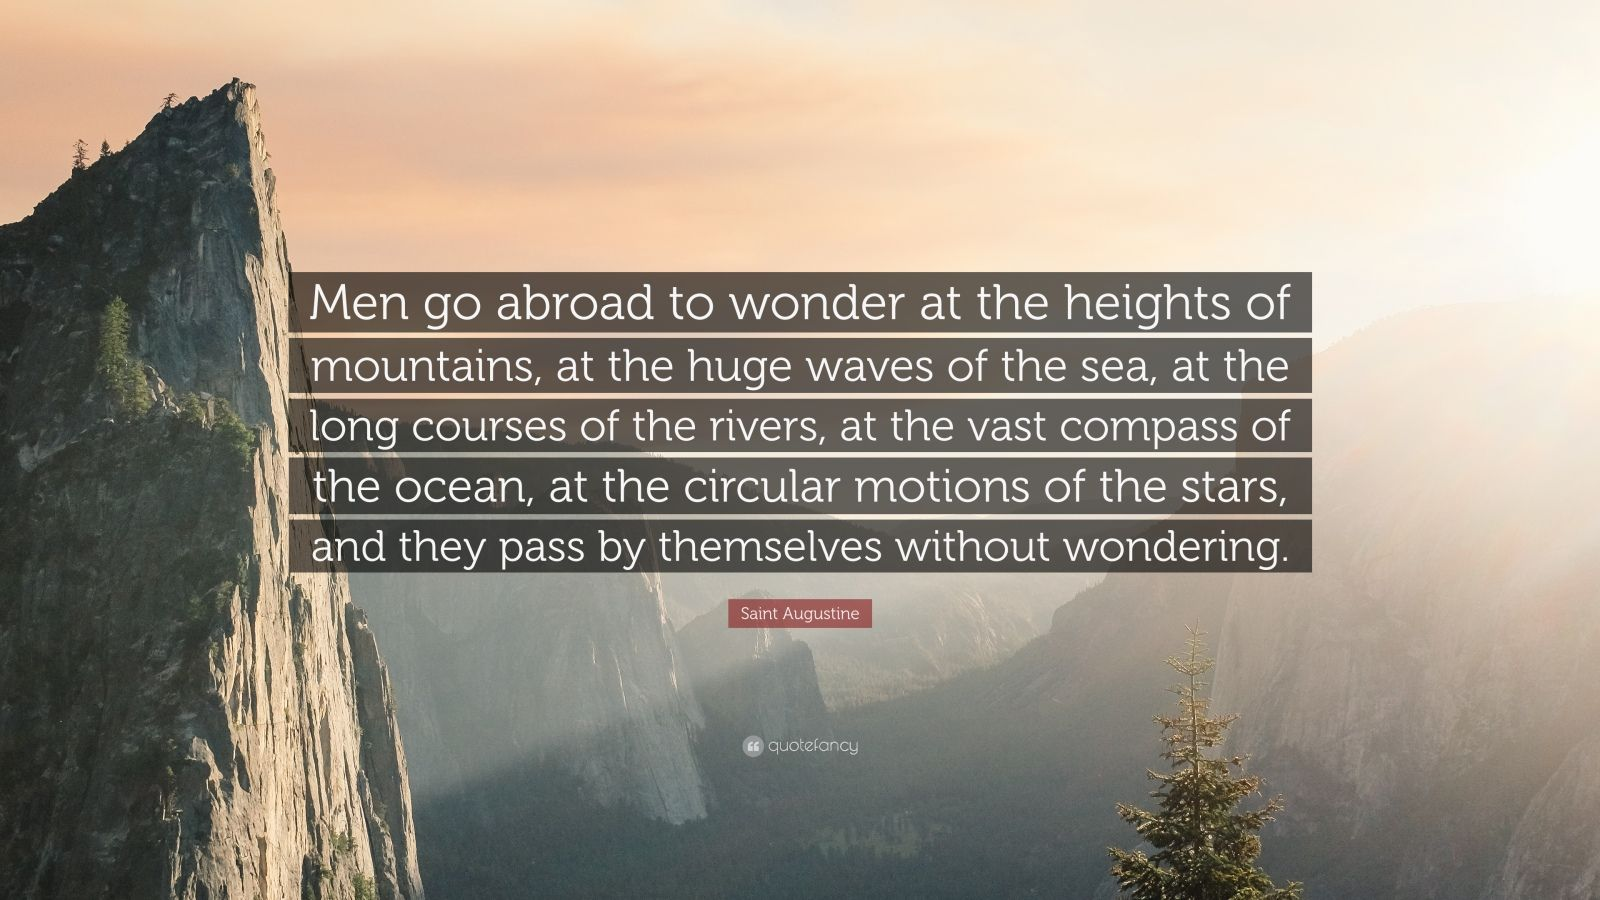 """Saint Augustine Quote: """"Men go abroad to wonder at the heights of mountains, at the huge waves of the sea, at the long courses of the rivers, at the vast compass of the ocean, at the circular motions of the stars, and they pass by themselves without wondering."""""""